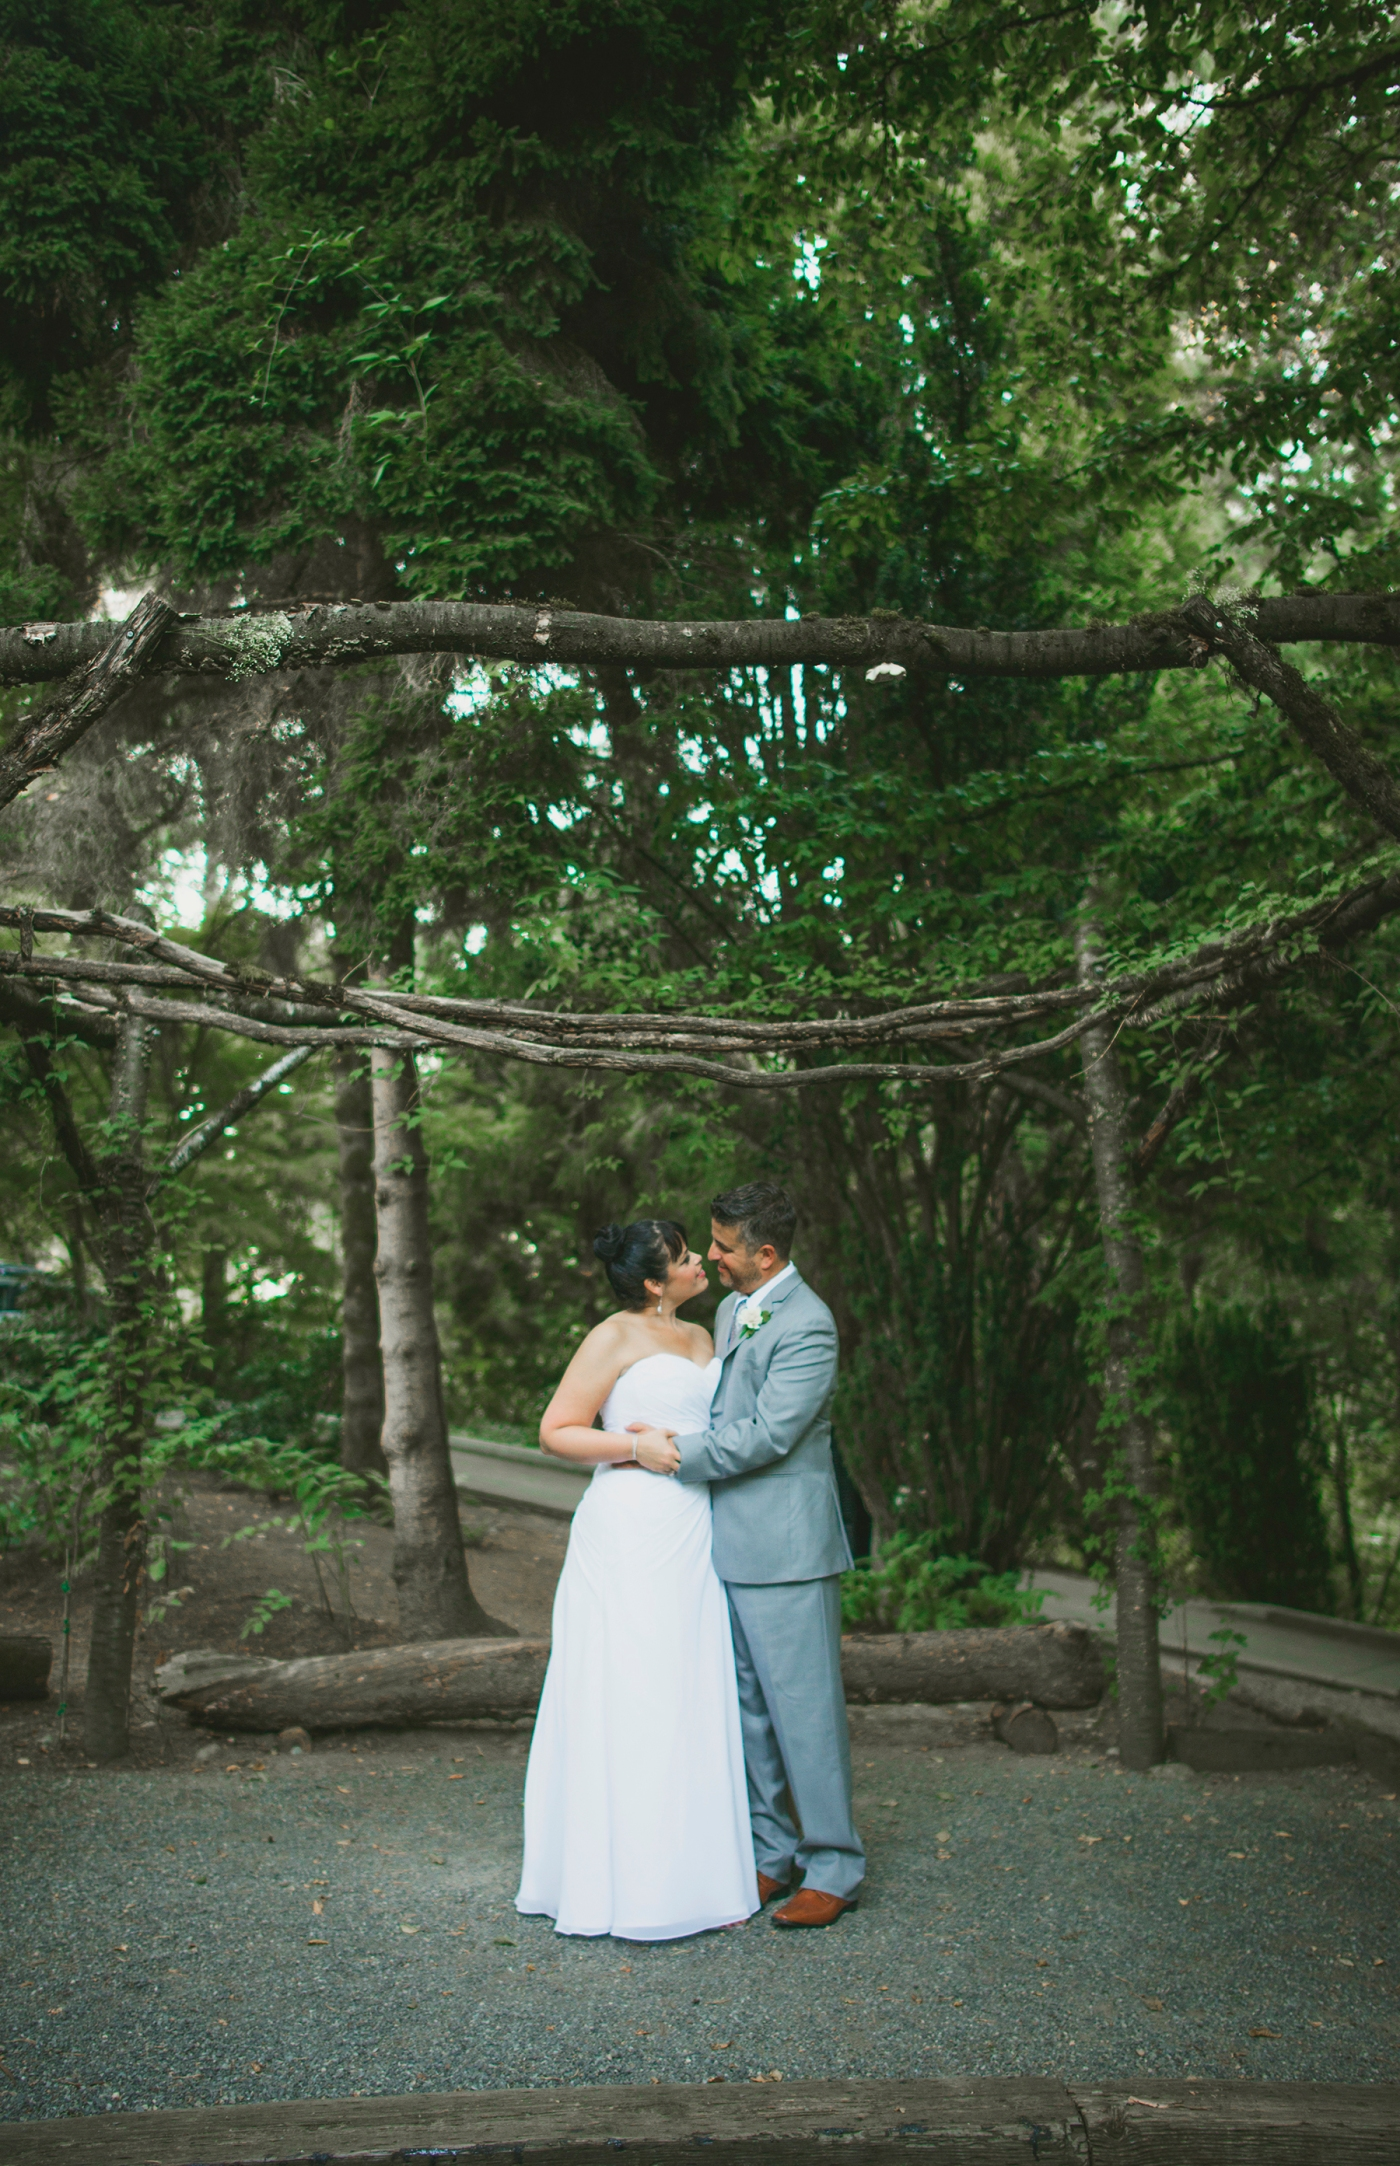 ang_matt_jm_woodinville_2016_js_photography_weddingdsc_3094